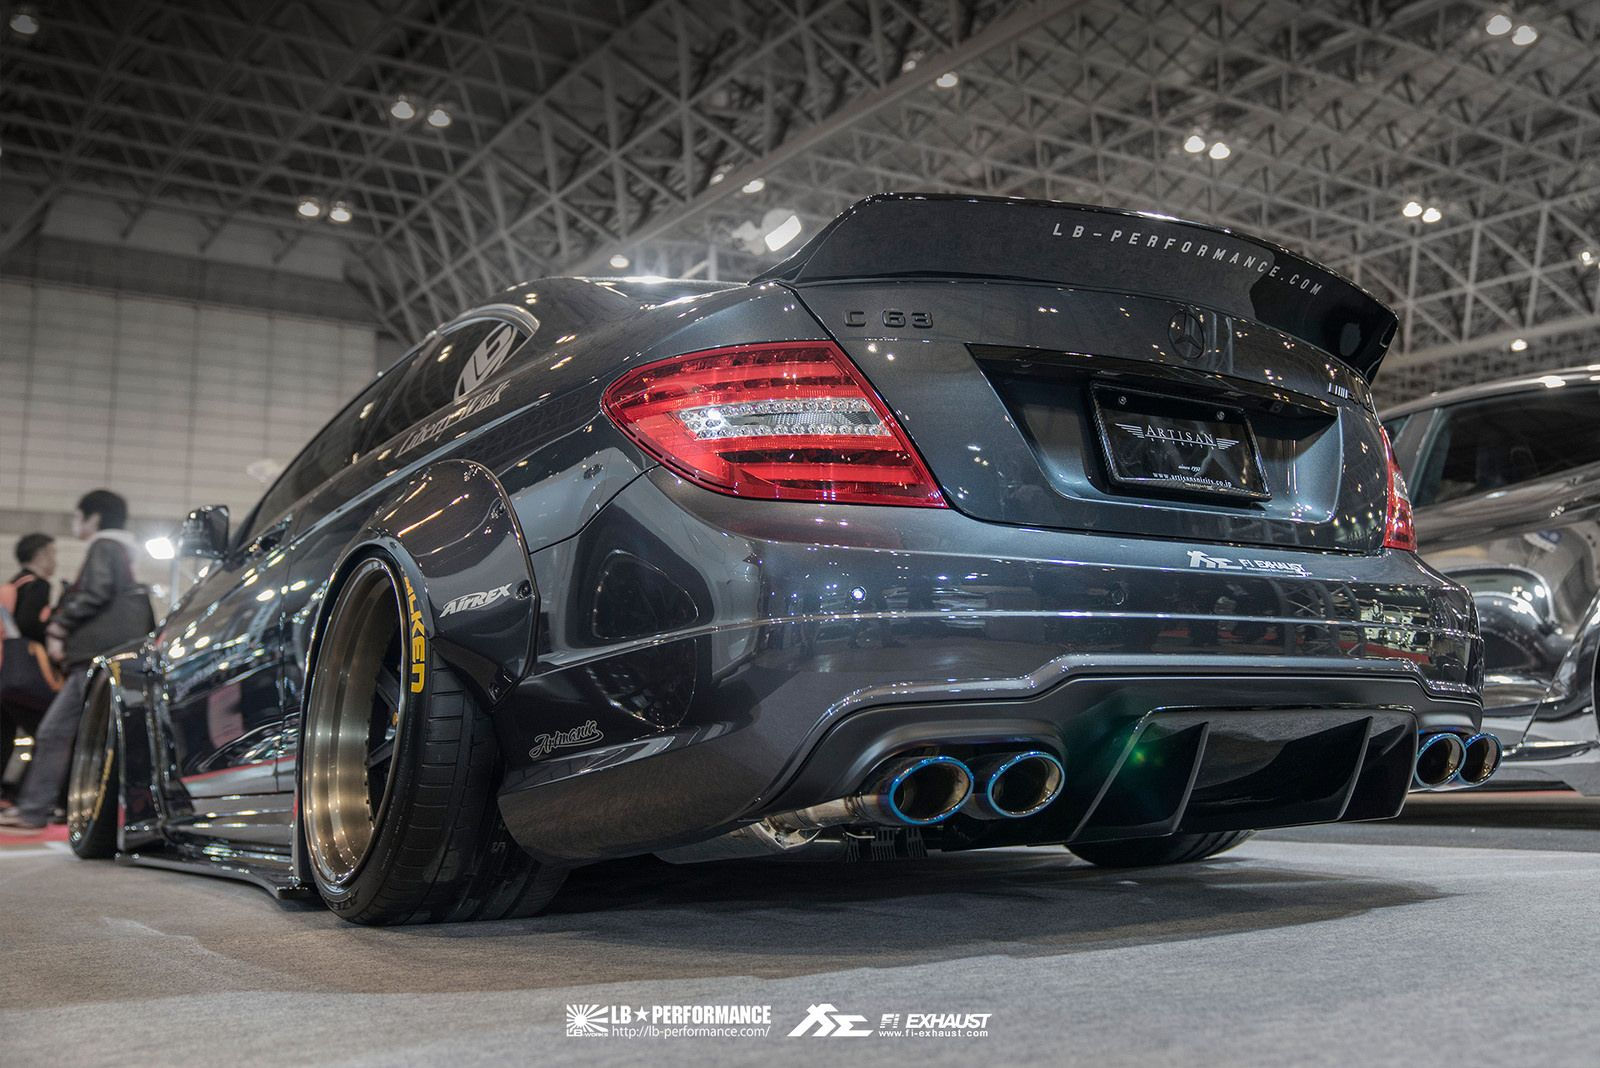 Liberty Walk Mercedes Benz C63 AMG with Fi Exhaust